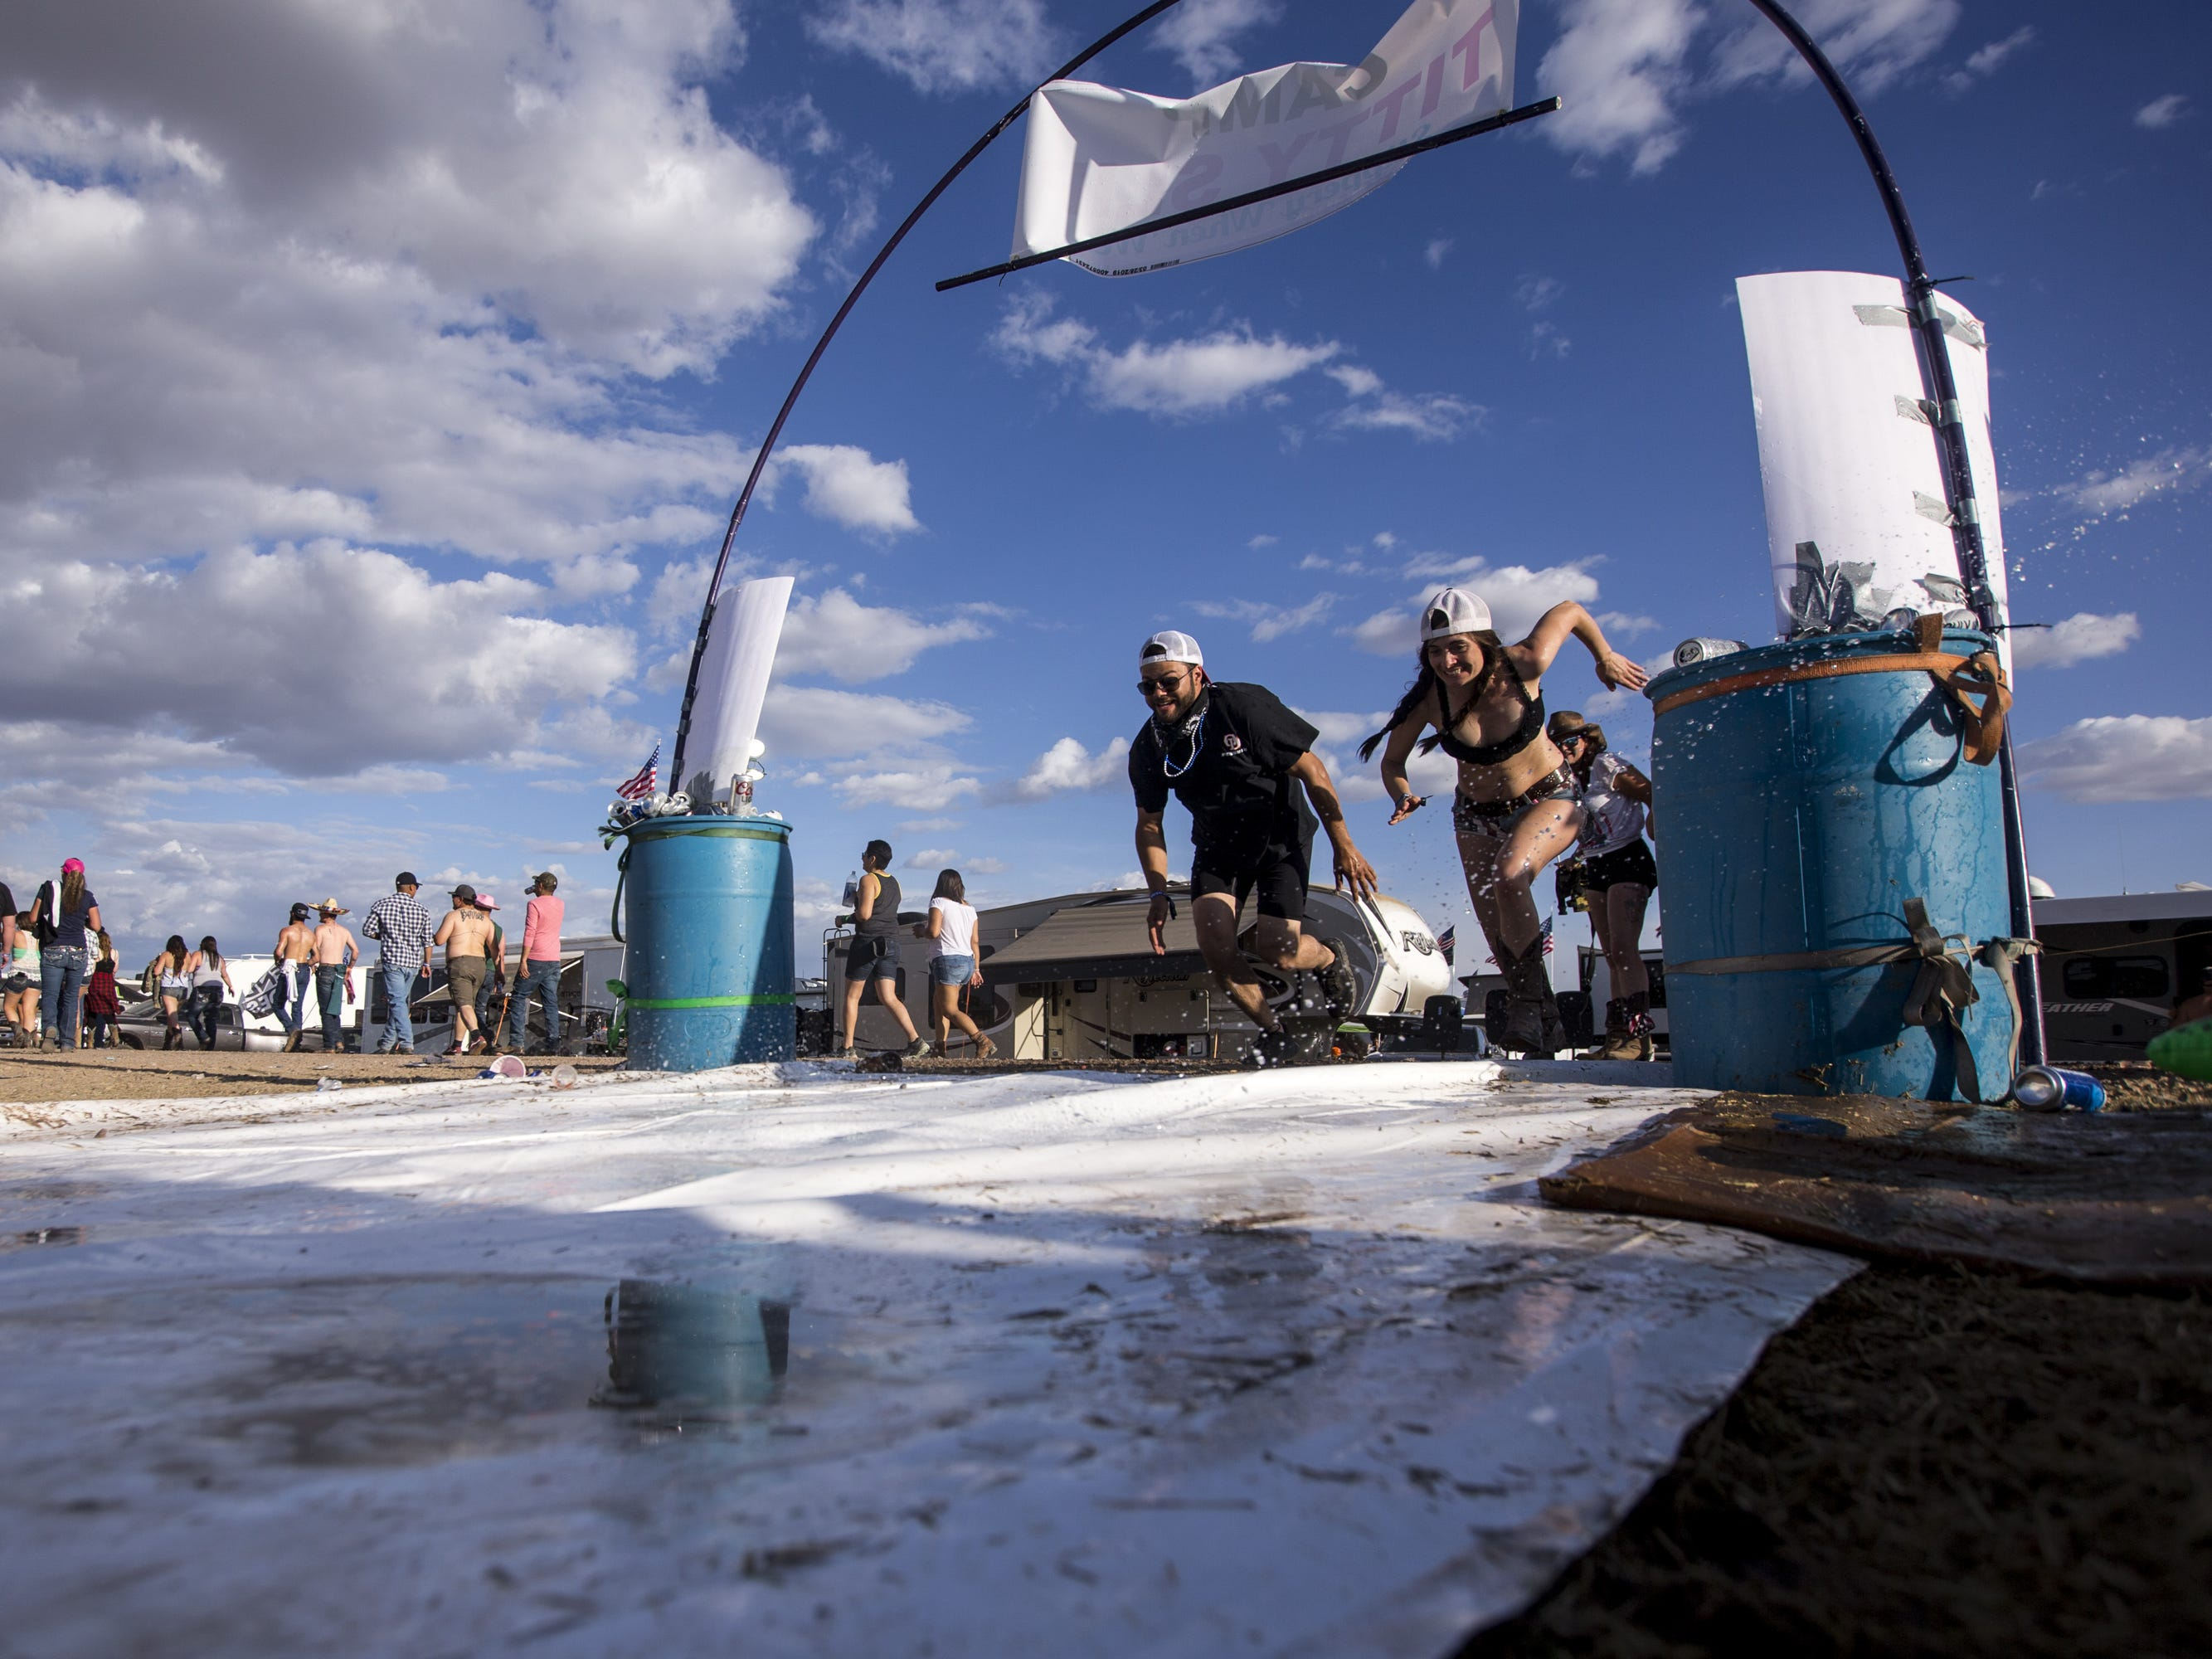 Nic McKee and Brooke Humphrey run to a slip and slide at the Crazy Coyote campground on Friday, April 12, 2019, during Day 2 of Country Thunder Arizona in Florence, Ariz.